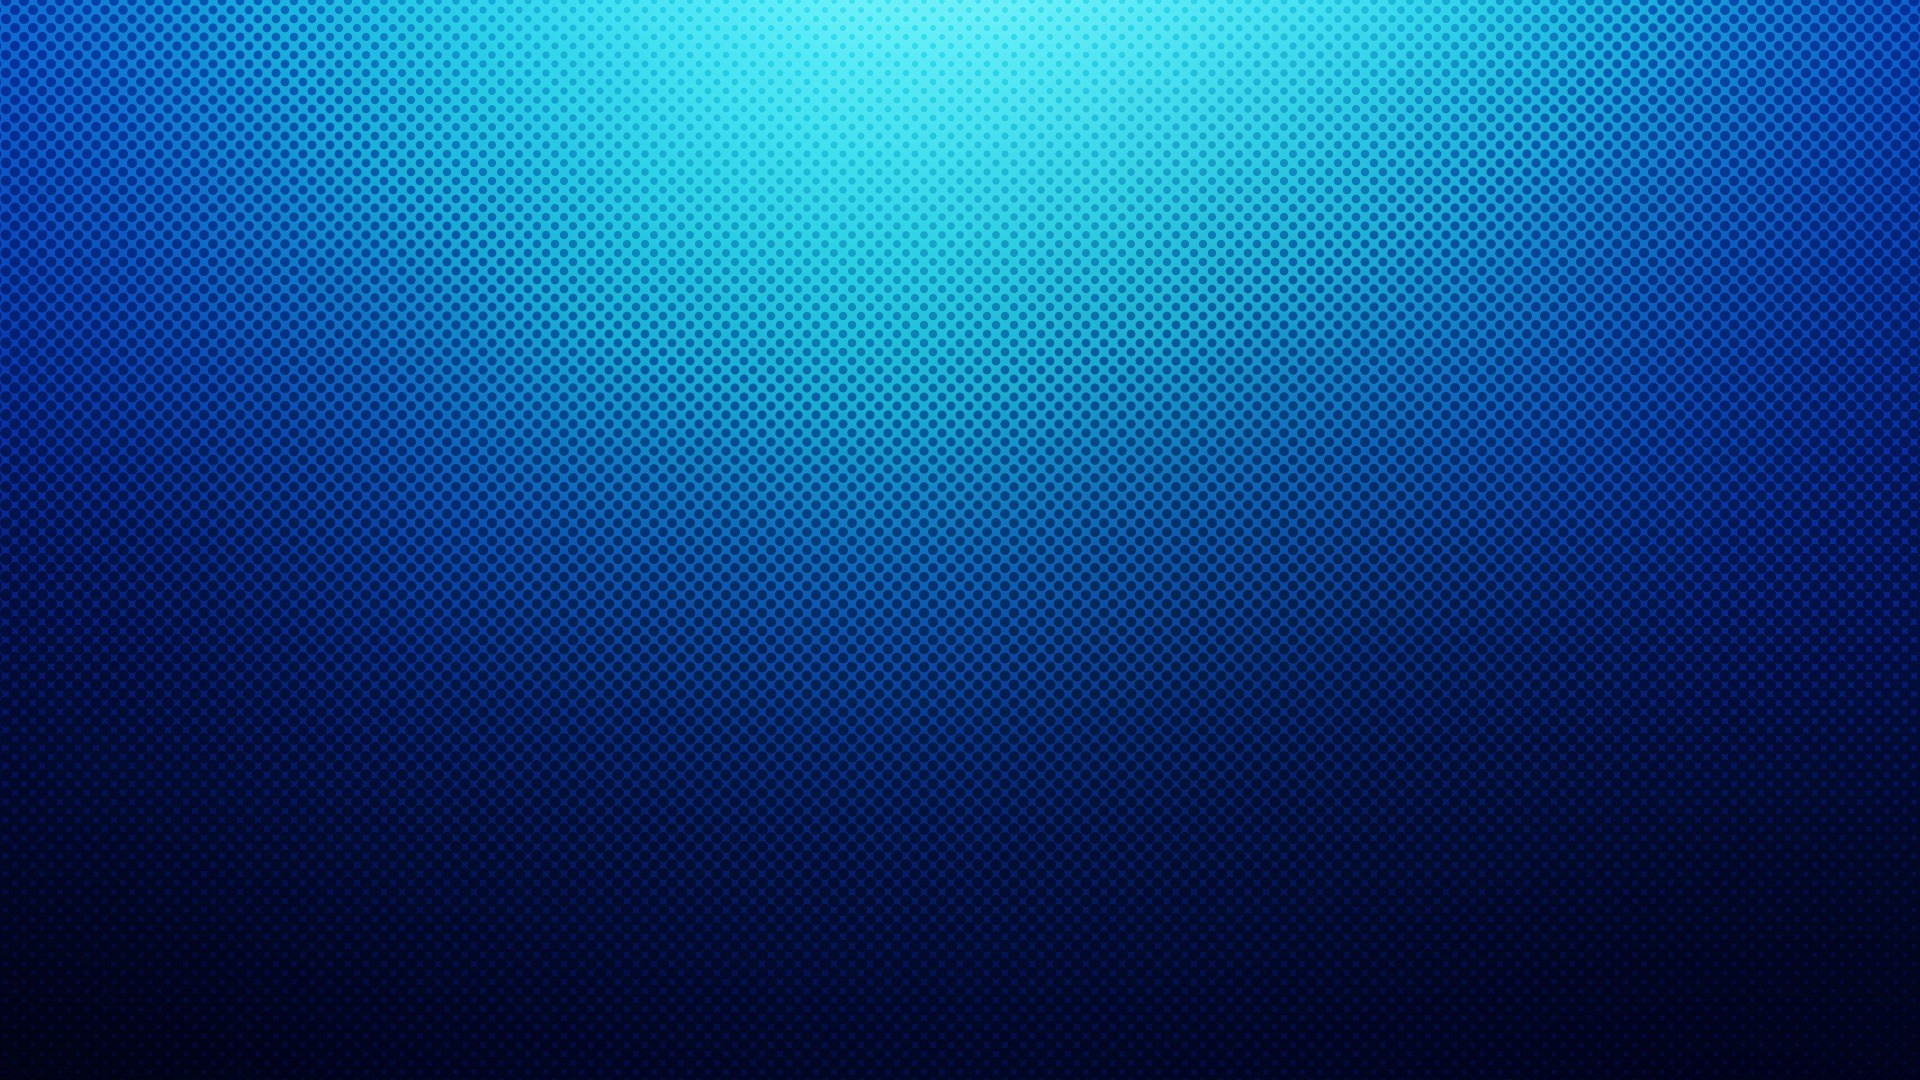 Res: 1920x1080, Backgrounds-blue-gradient-hd-wallpapers